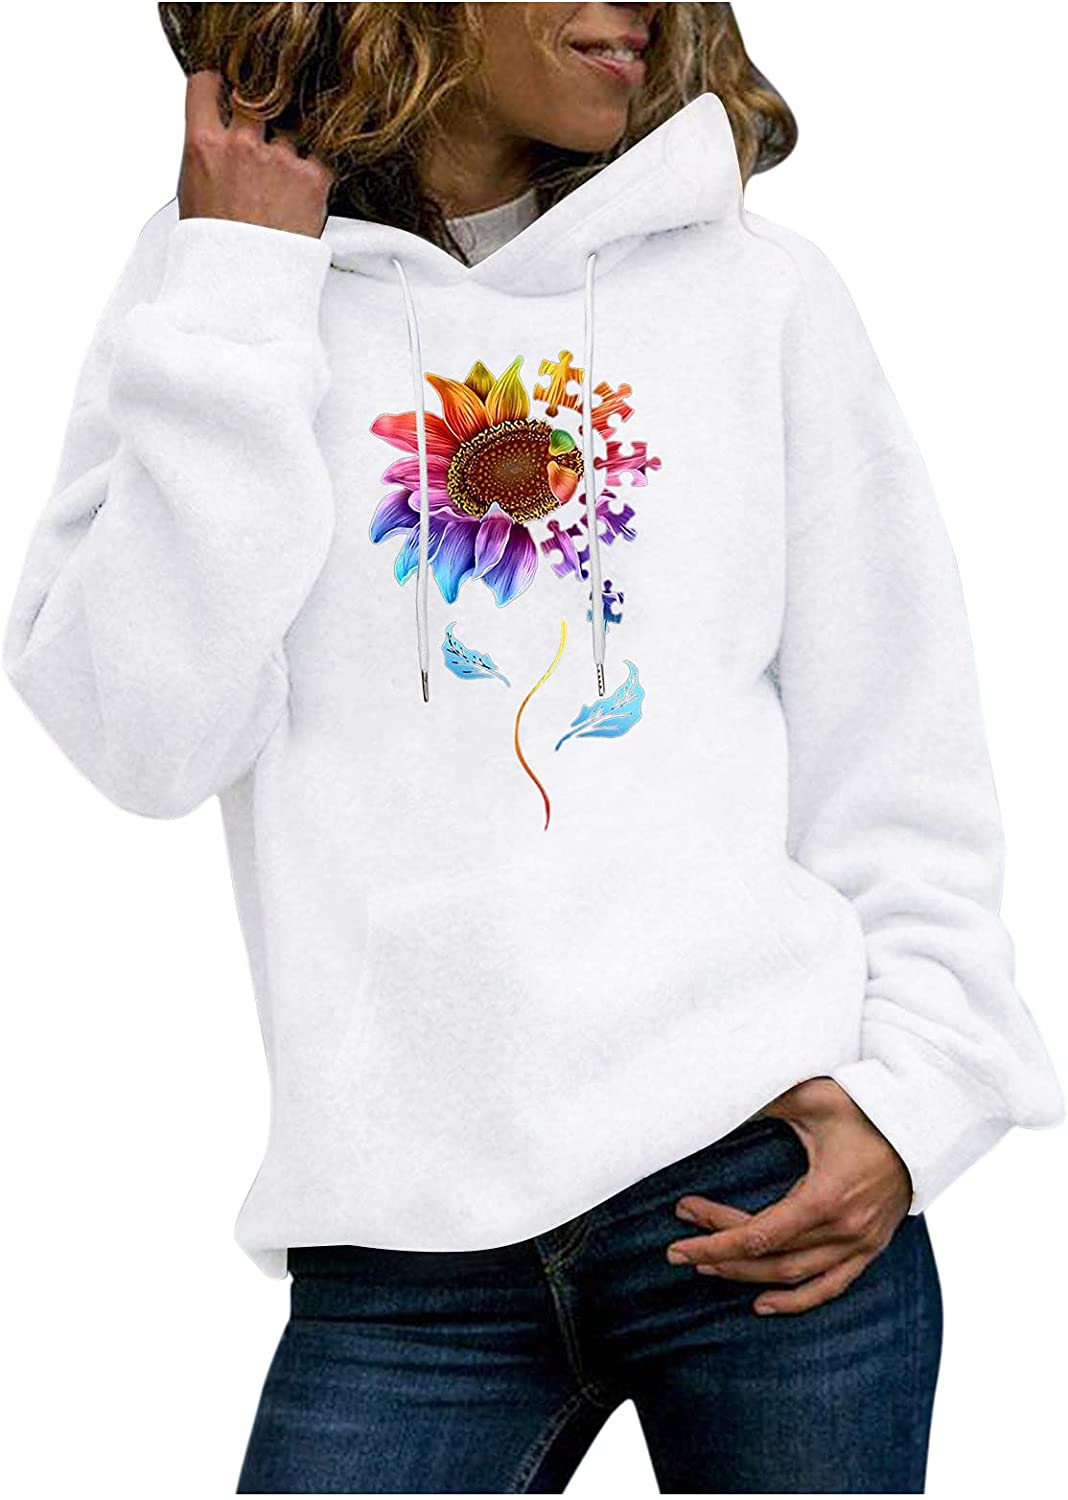 Over item handling ☆ 2021 new Eoailr Sweatshirts for Womens Casual Sleeve Long Hoodie Pullover